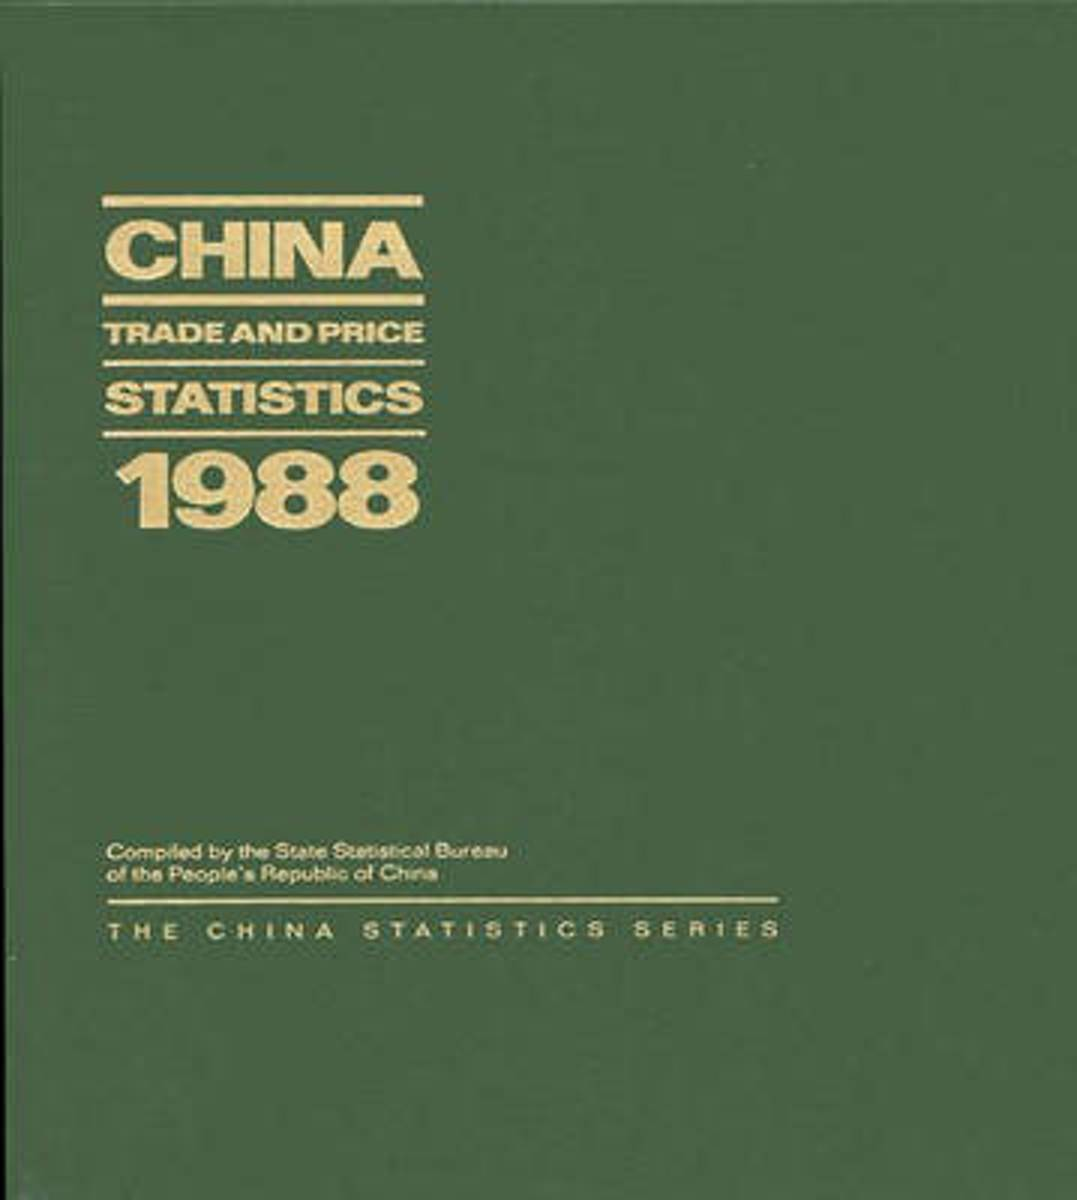 China Trade and Price Statistics 1988